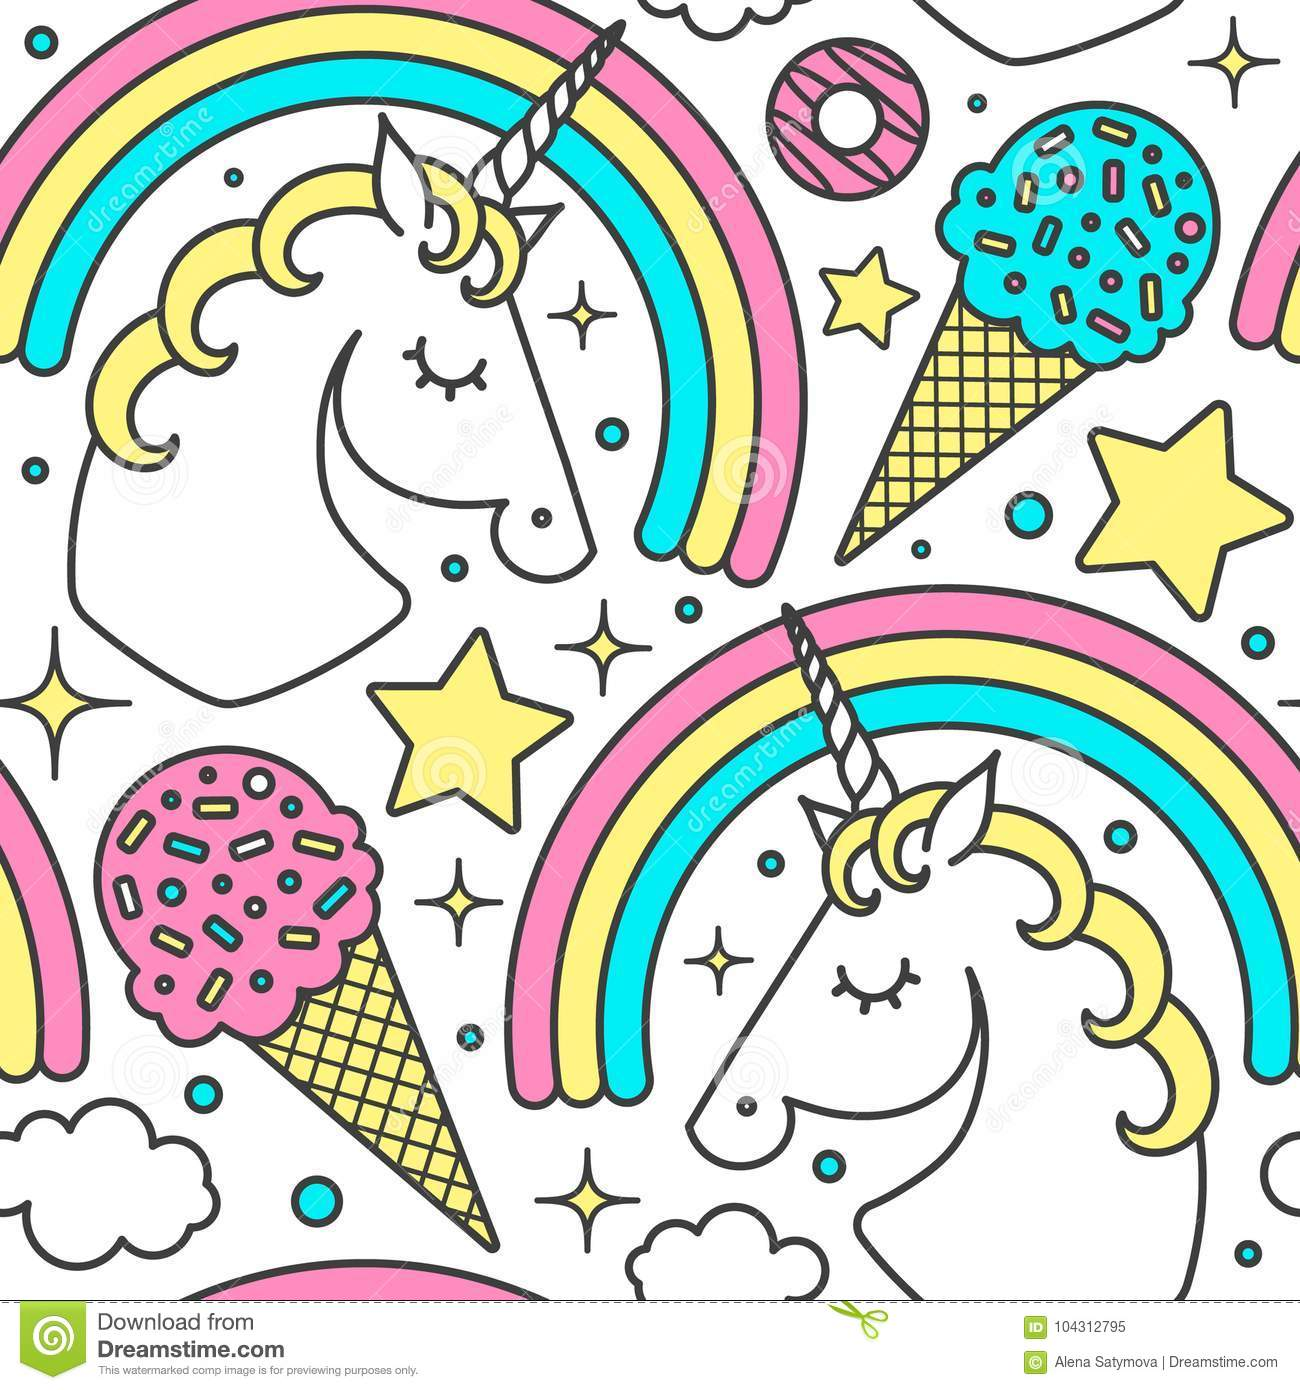 Pattern Cute Colorful Ice Cream Textiles Stock Vector: Seamless Pattern With Unicorn, Rainbow, Clouds, Stars, Ice